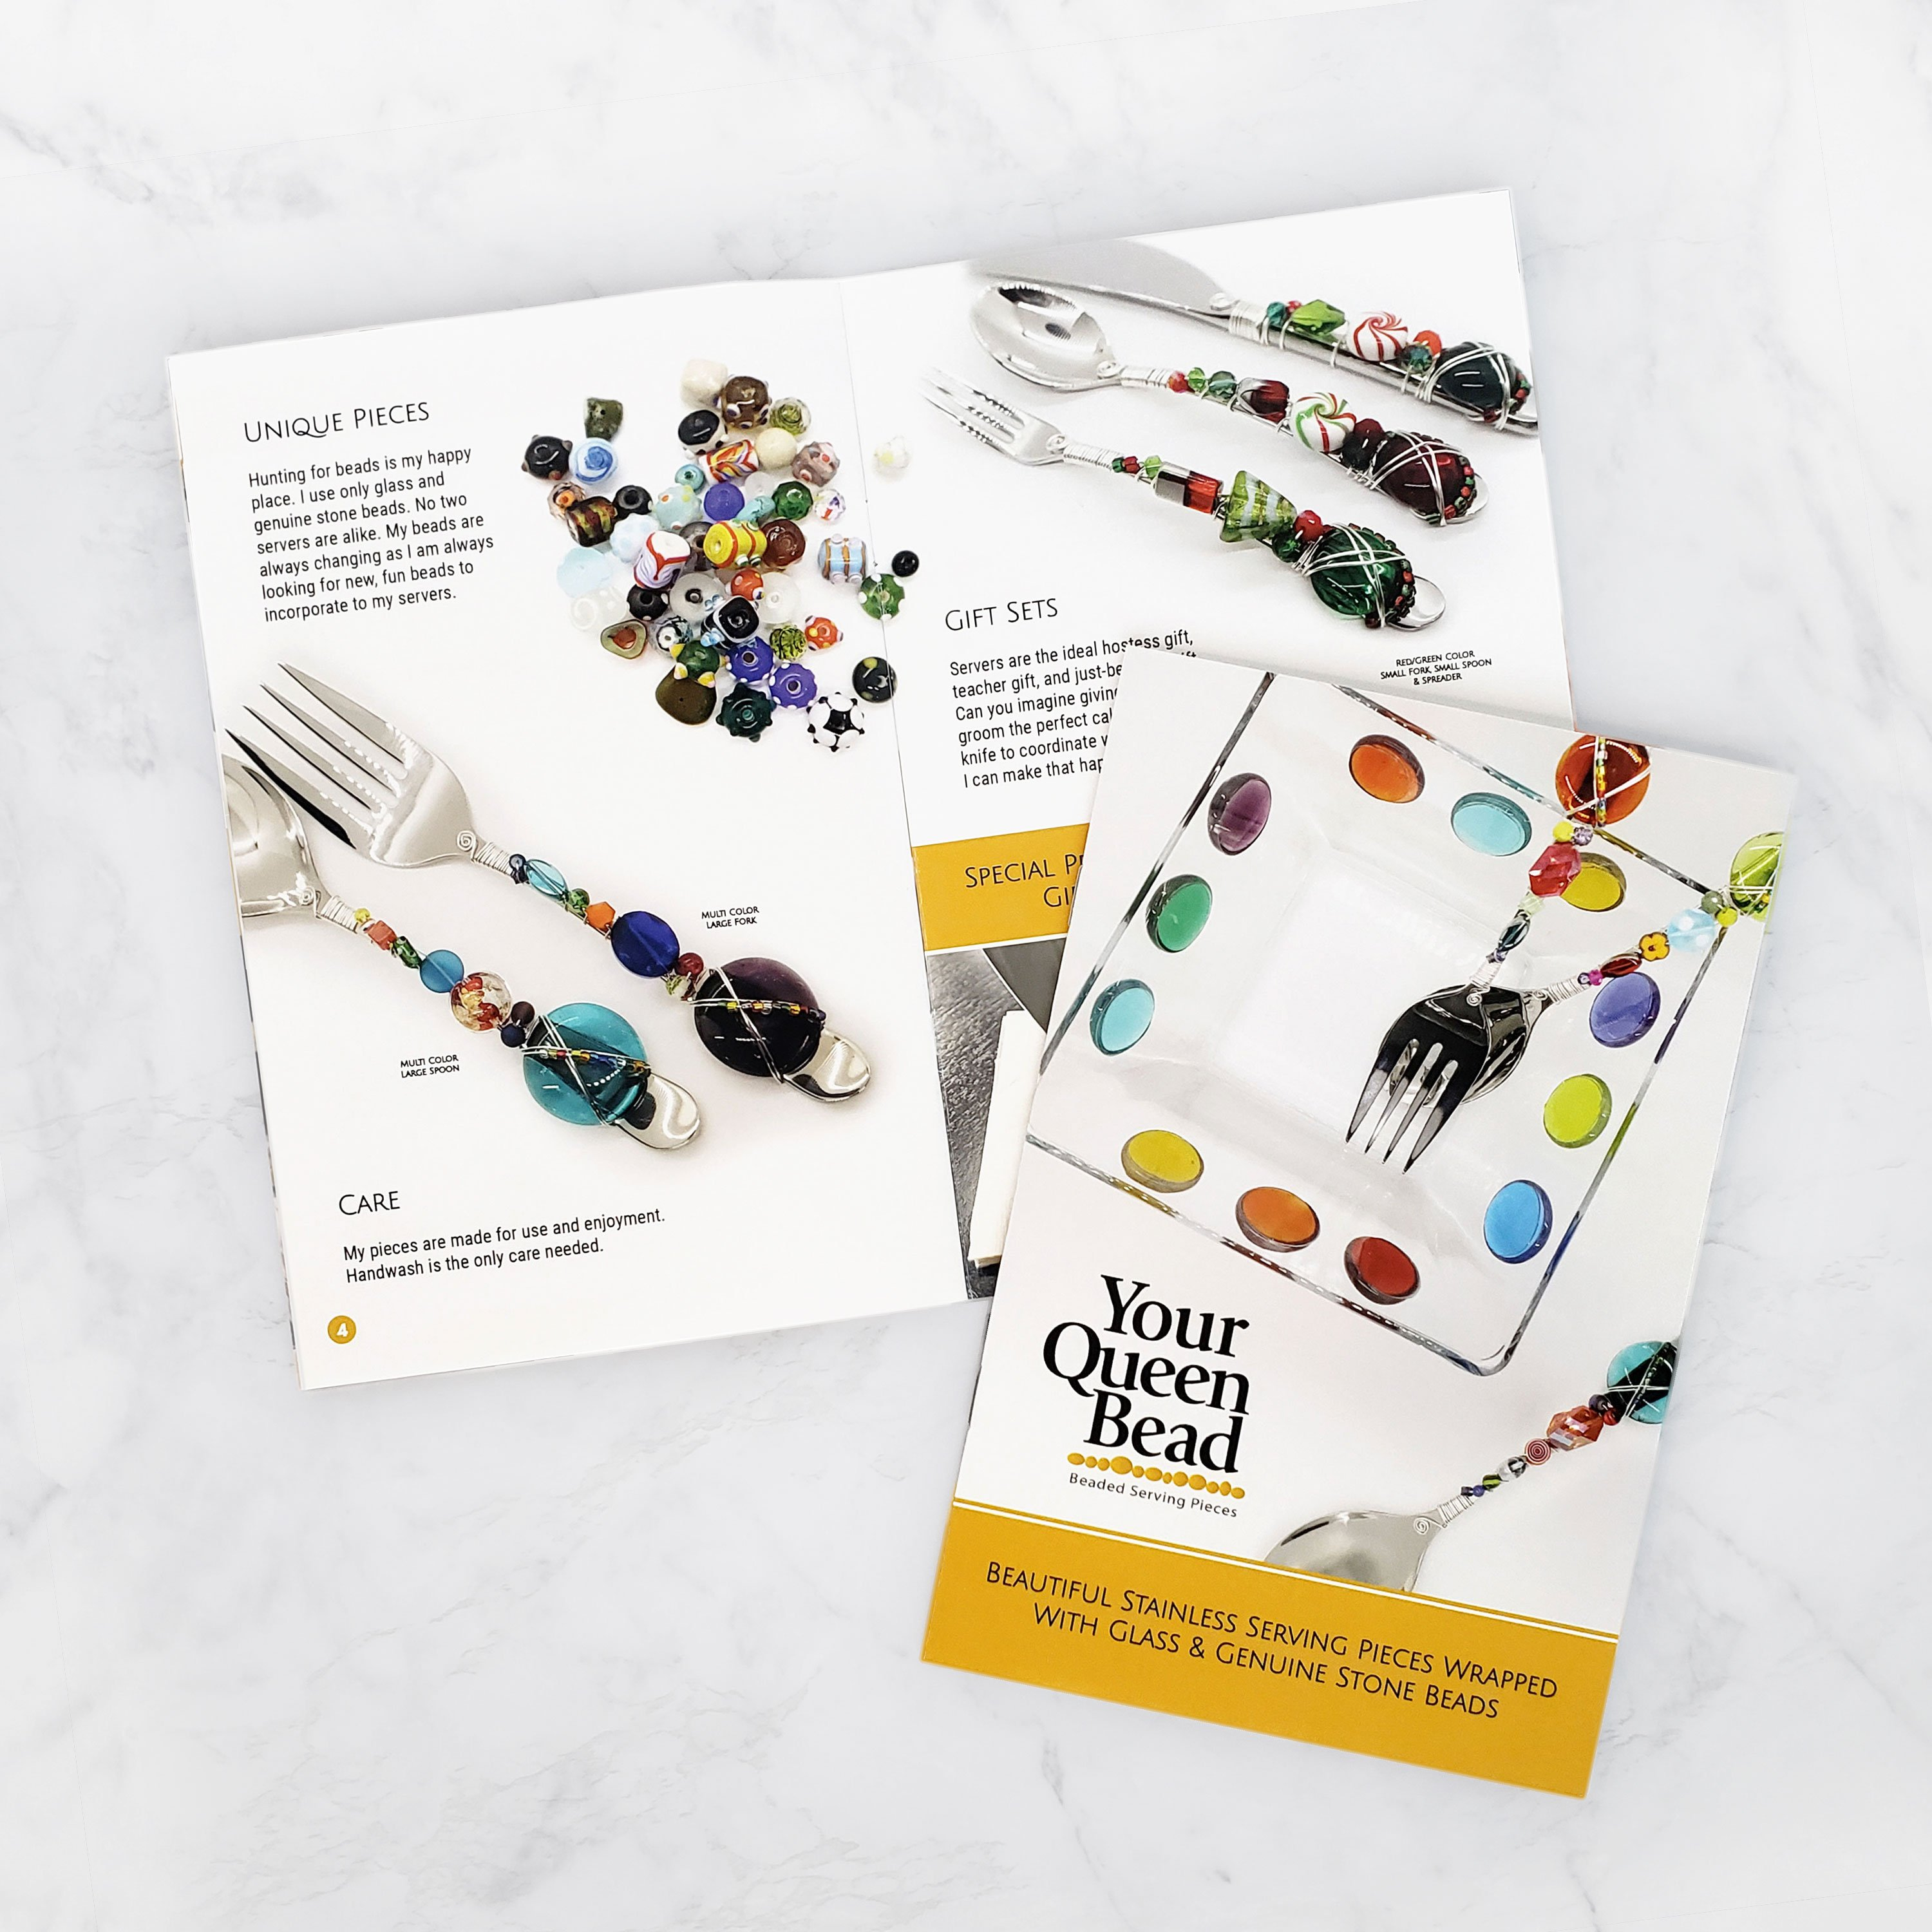 Your Queen Bead Catalog